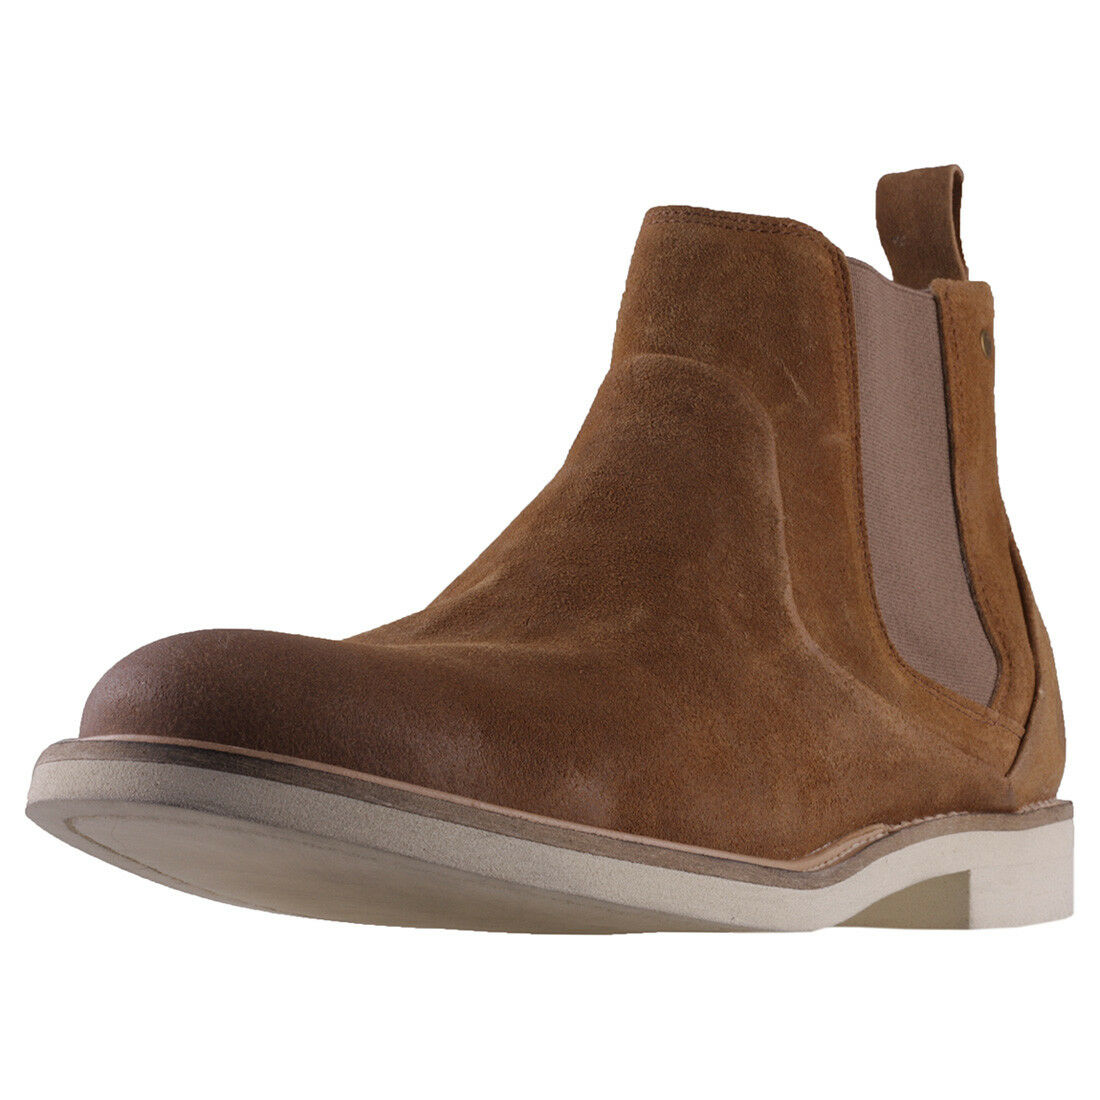 Sneaky Steve Shinner Mens Whiskey Suede Chelsea Boots - 46 EU